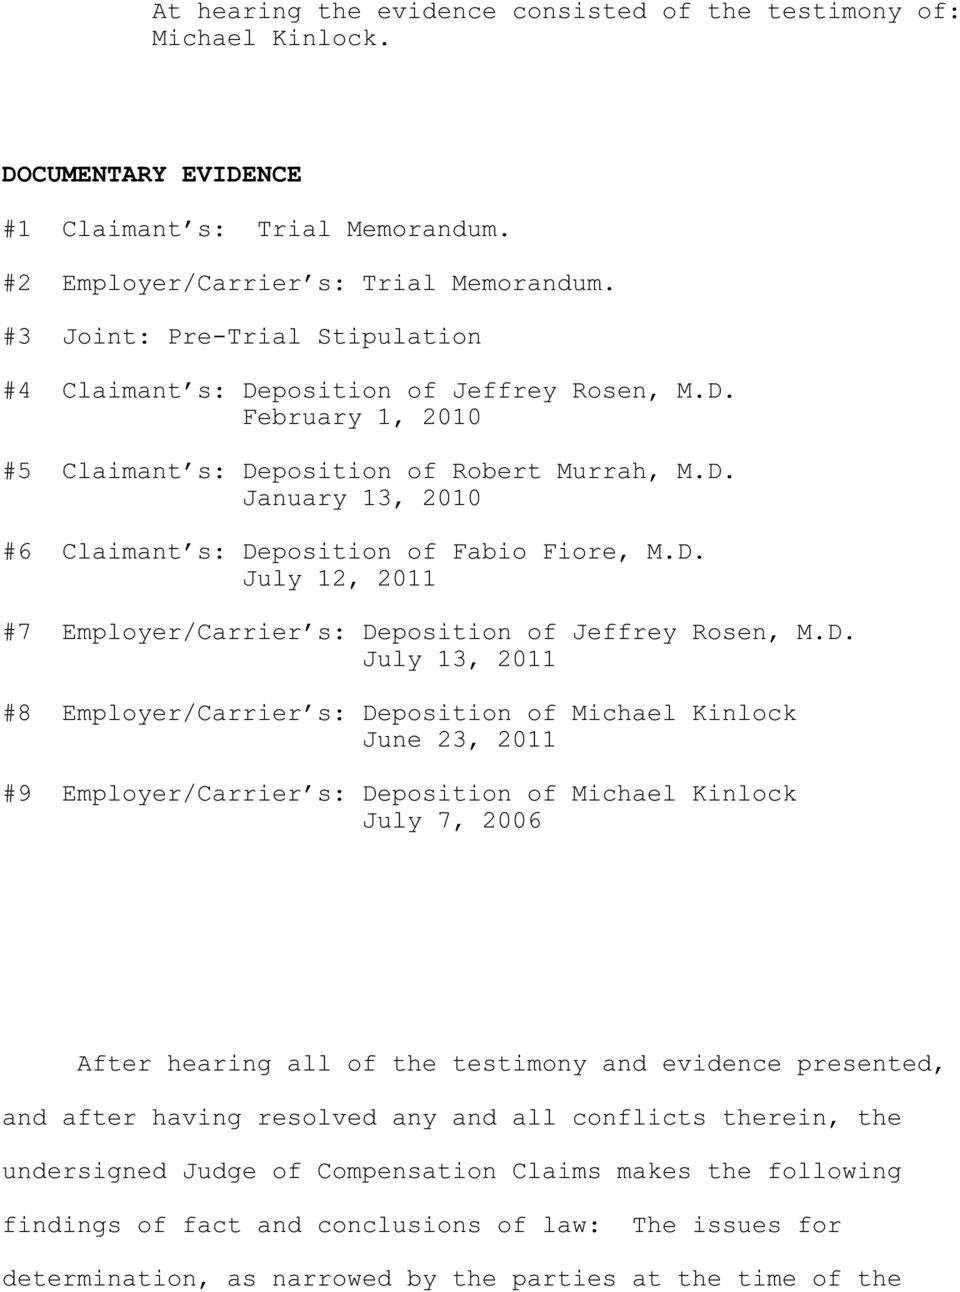 D. July 12, 2011 #7 Employer/Carrier s: Deposition of Jeffrey Rosen, M.D. July 13, 2011 #8 Employer/Carrier s: Deposition of Michael Kinlock June 23, 2011 #9 Employer/Carrier s: Deposition of Michael